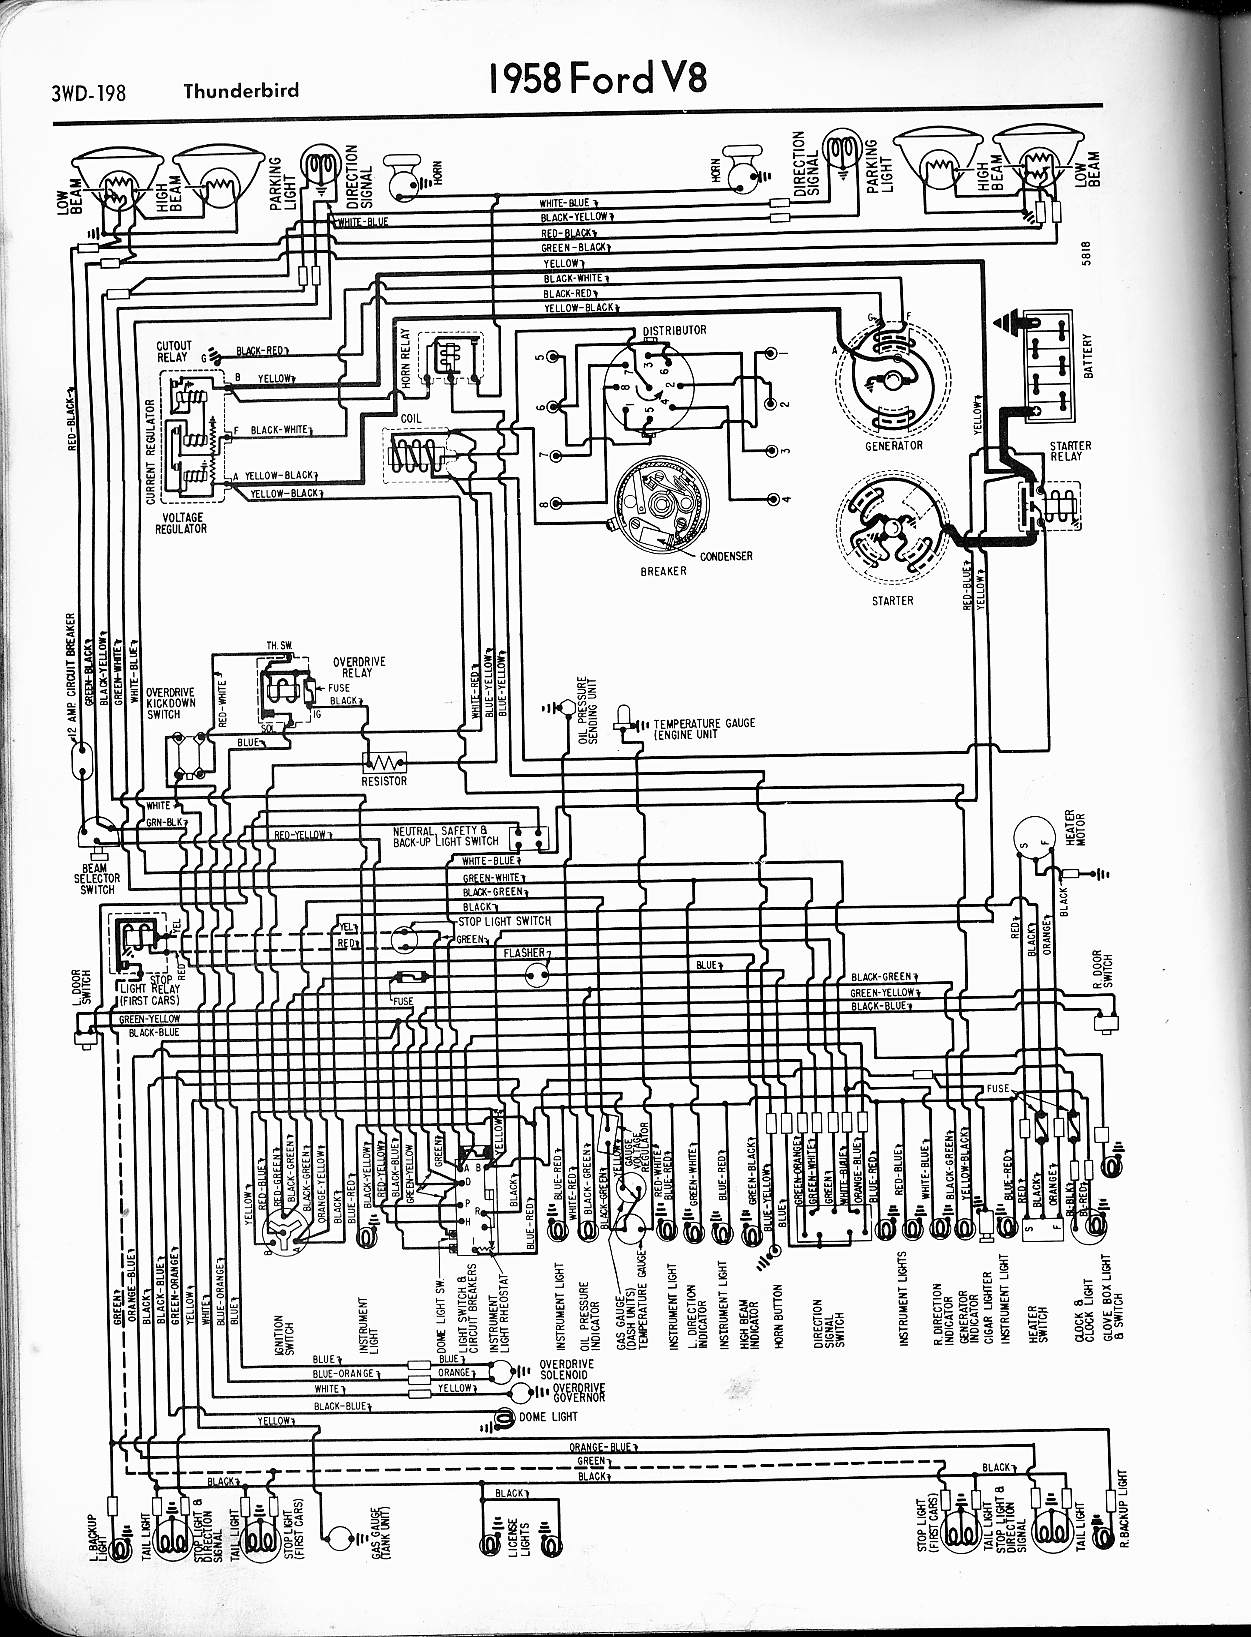 Phenomenal Wiring Diagram For 57 Ford Wiring Diagram Wiring Cloud Staixuggs Outletorg